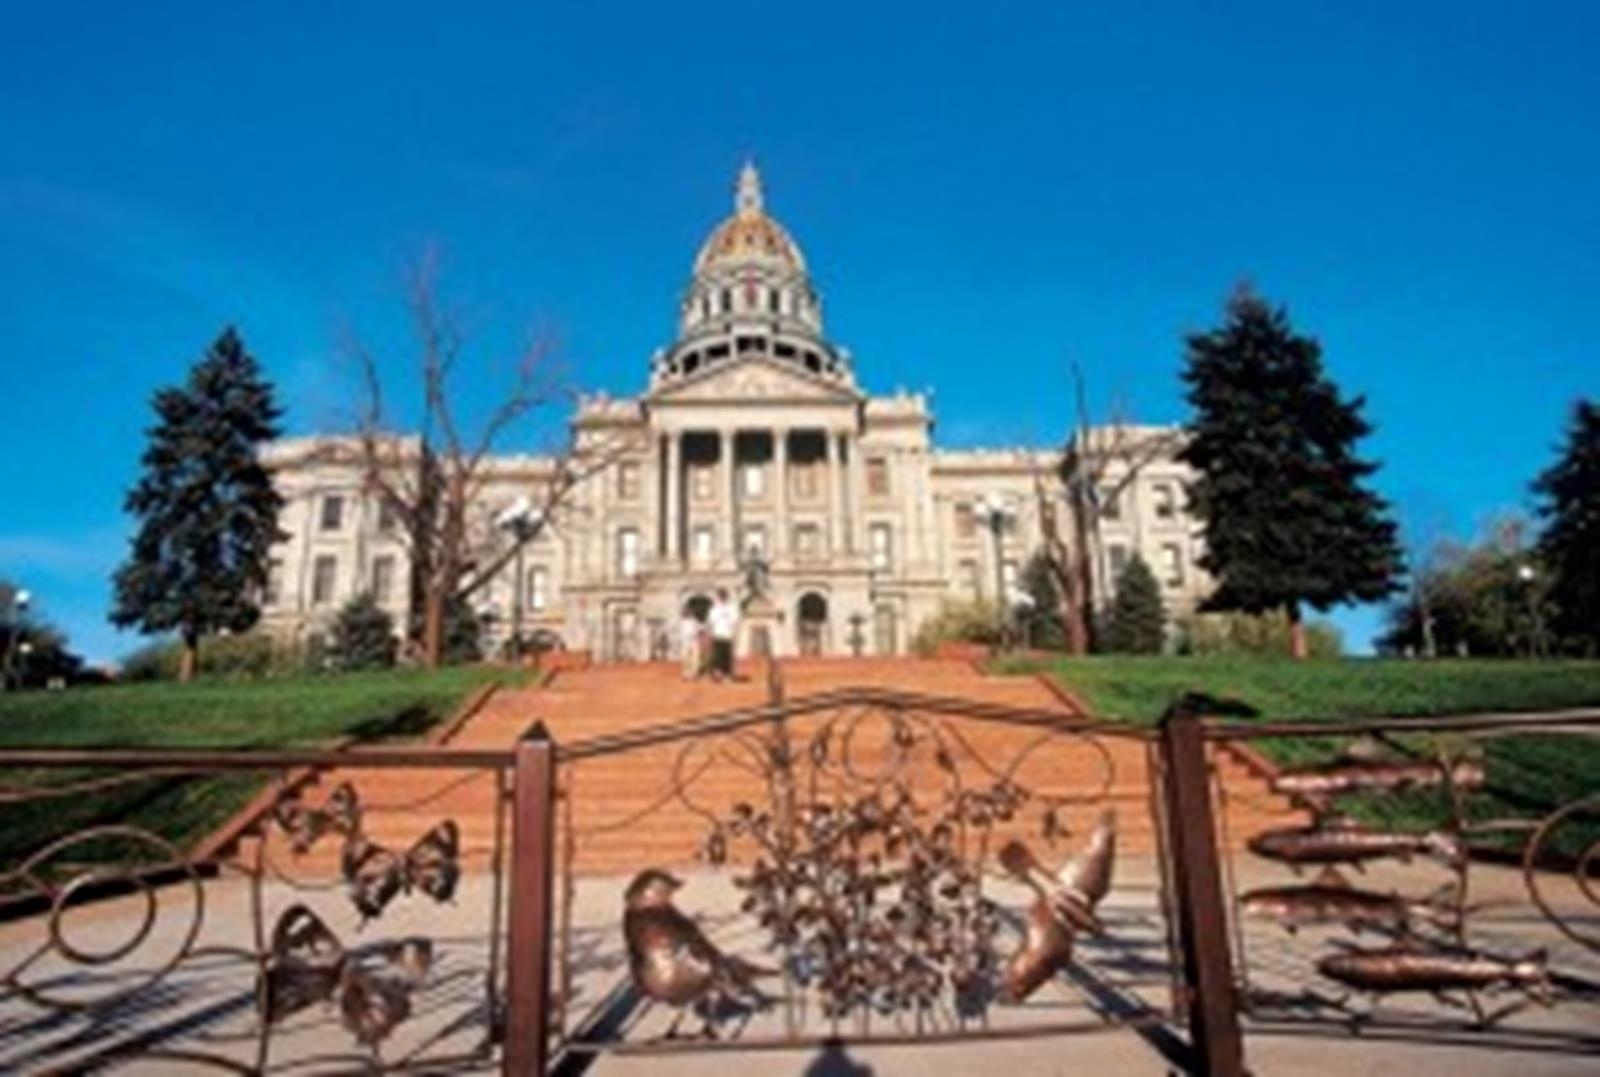 Tour the Mile High City's capitol building in Denver, Colorado. (Photo Courtesy of VISIT DENVER)